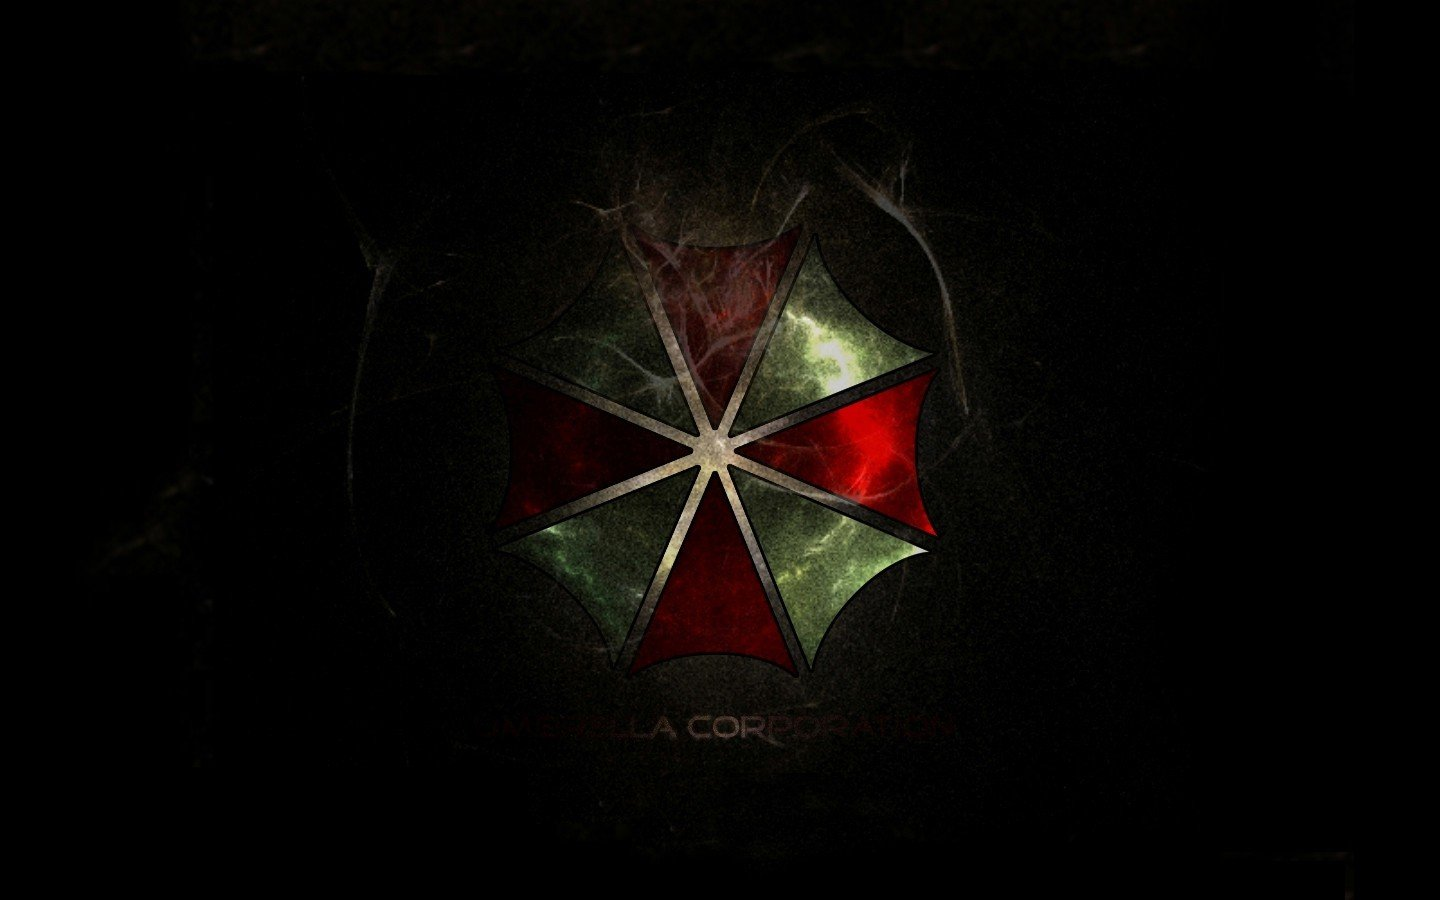 Umbrella corporation hd wallpapers desktop and mobile - Umbrella corporation wallpaper hd 1366x768 ...